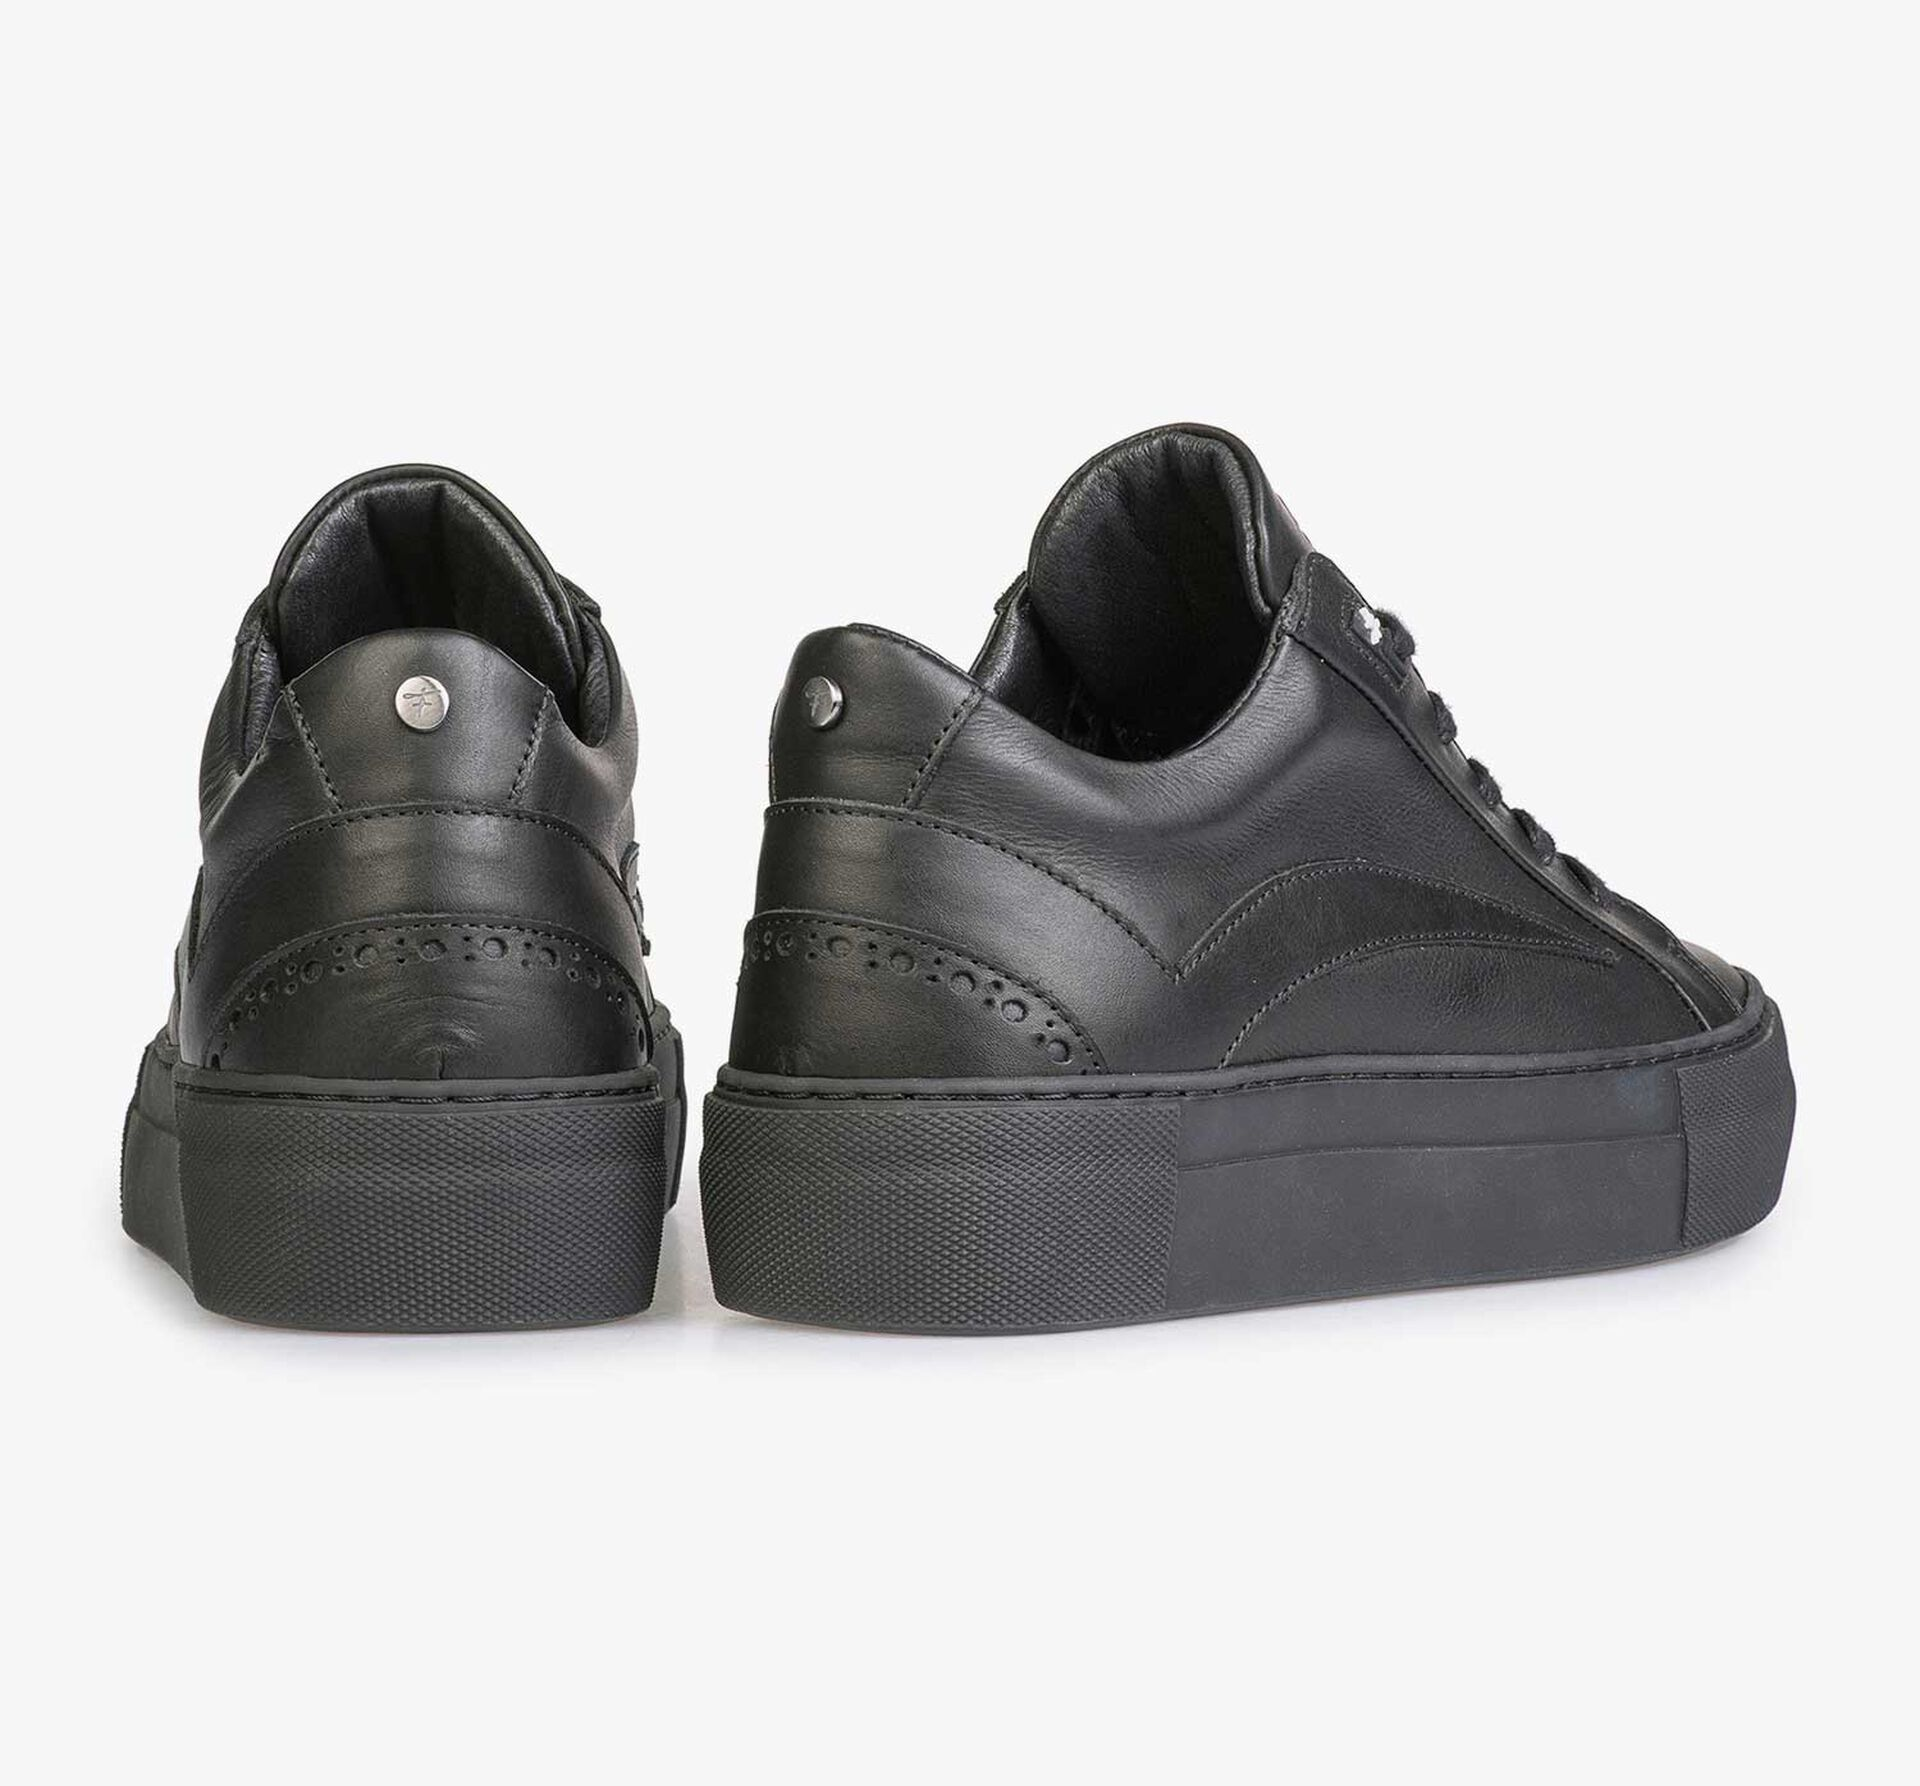 Black leather sneaker with a black cup sole